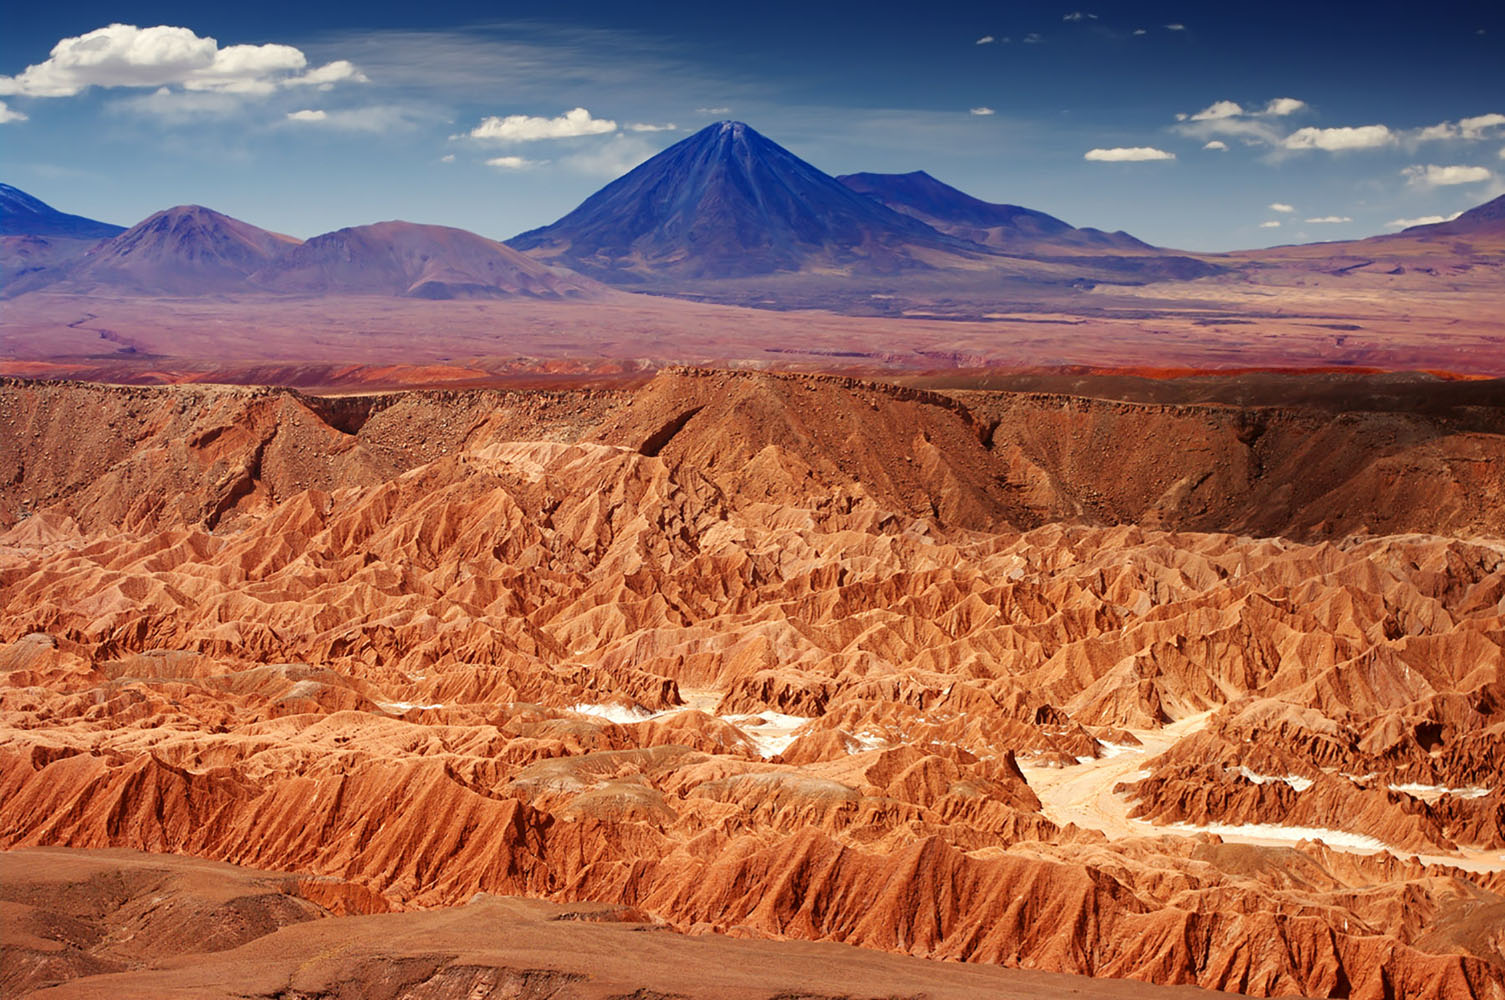 Red mountains in Chile's Atacama Desert.